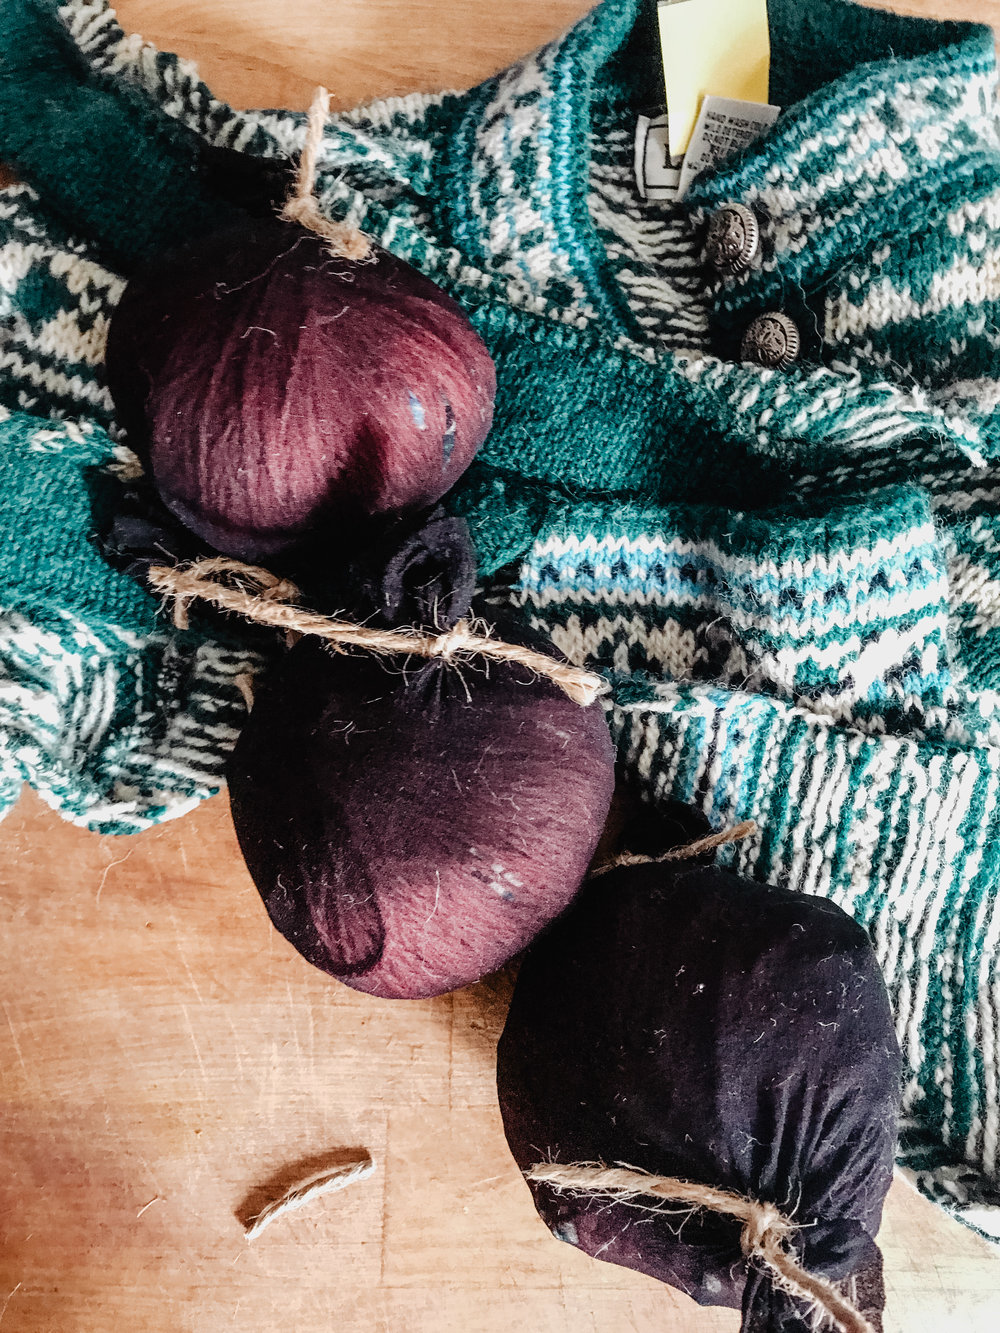 To felt the ball, put it in a pantyhose leg. Tie it off the ends with the piece of yarn. Wash the balls(s) with a load of laundry on HOT. Then dry them on the highest setting you have. Do this twice- or until the ball is completely felted.